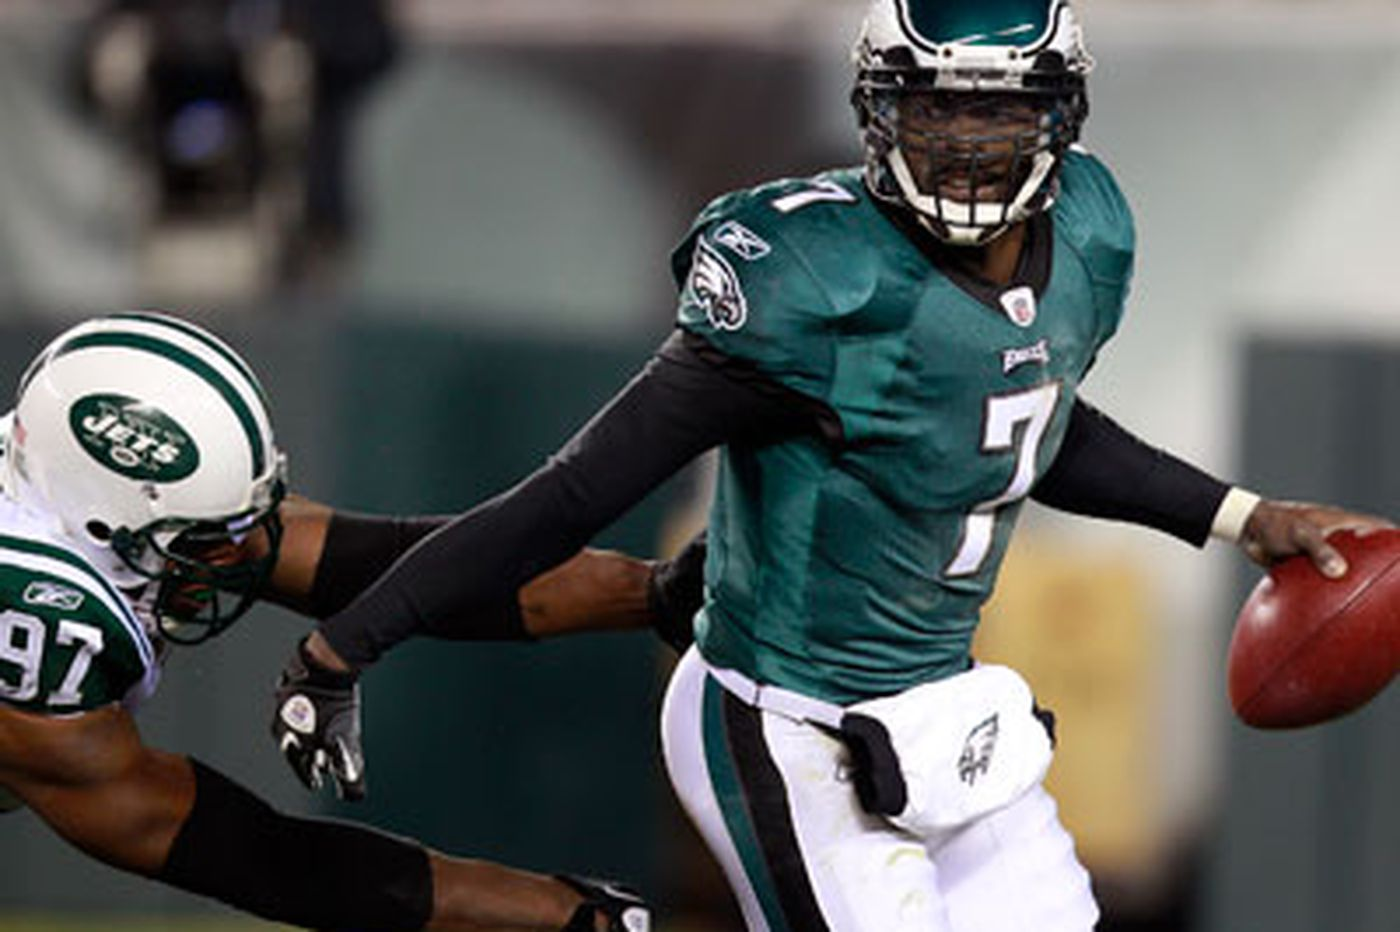 Vick will lead Eagles to a win over Redskins